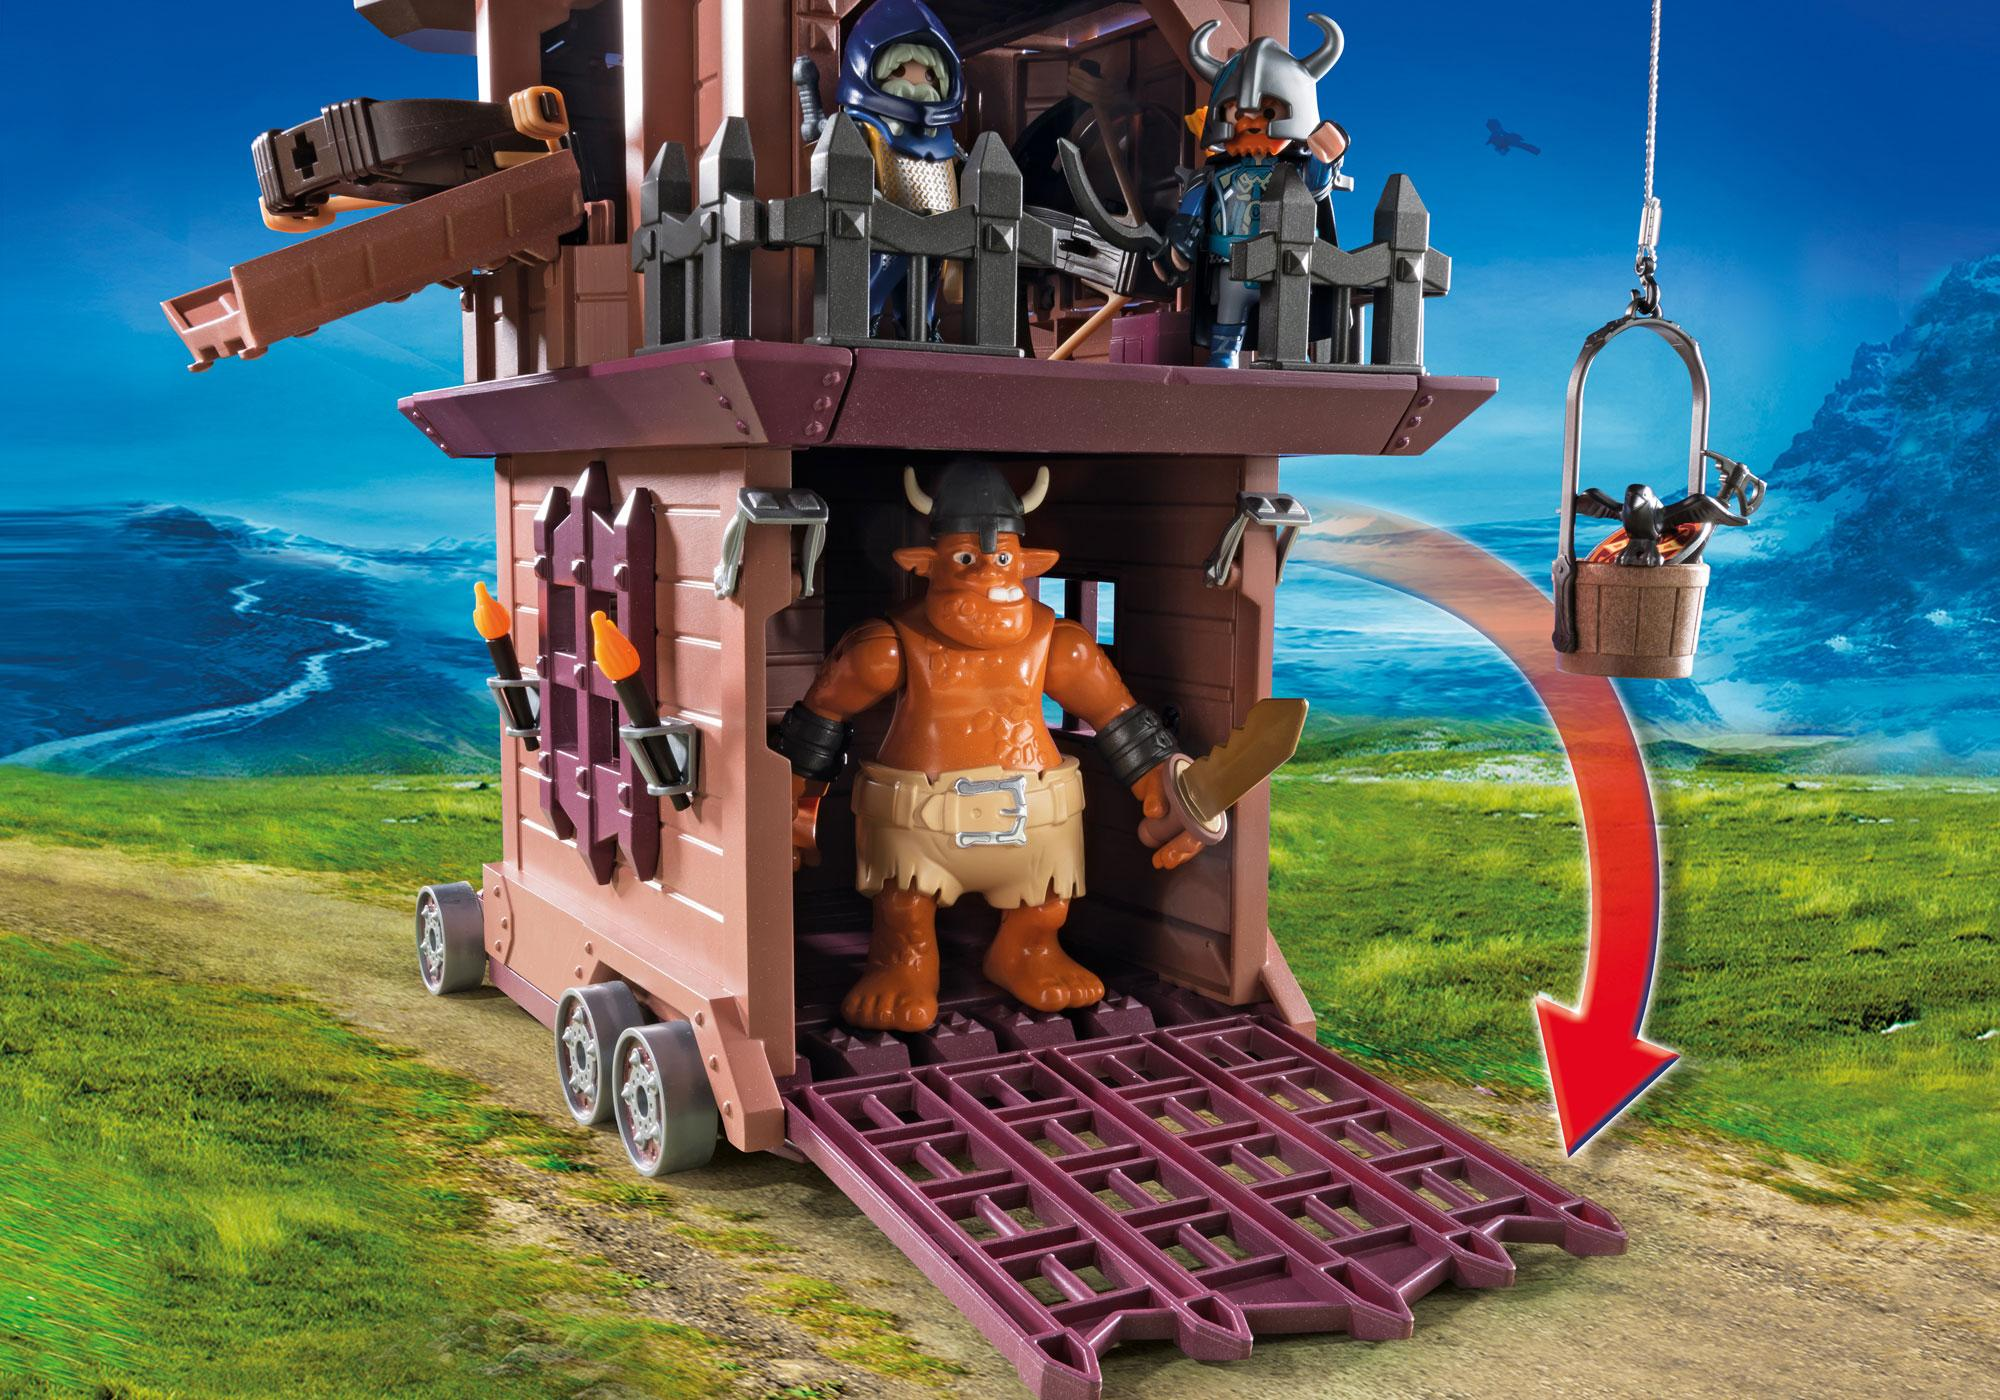 http://media.playmobil.com/i/playmobil/9340_product_extra1/Mobile Dwarf Fortress